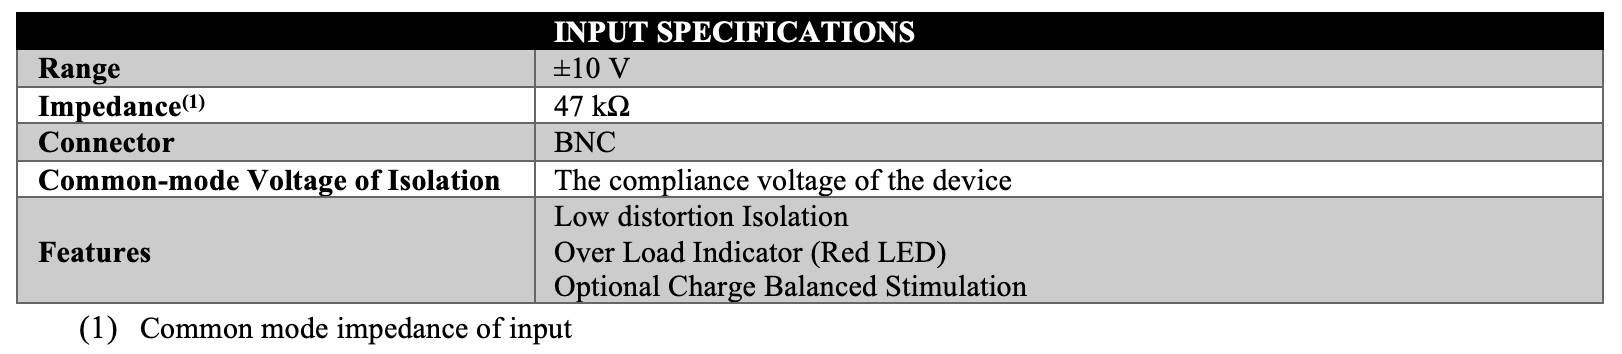 Caputron High Voltage Linear Current Isolator Input Specifications